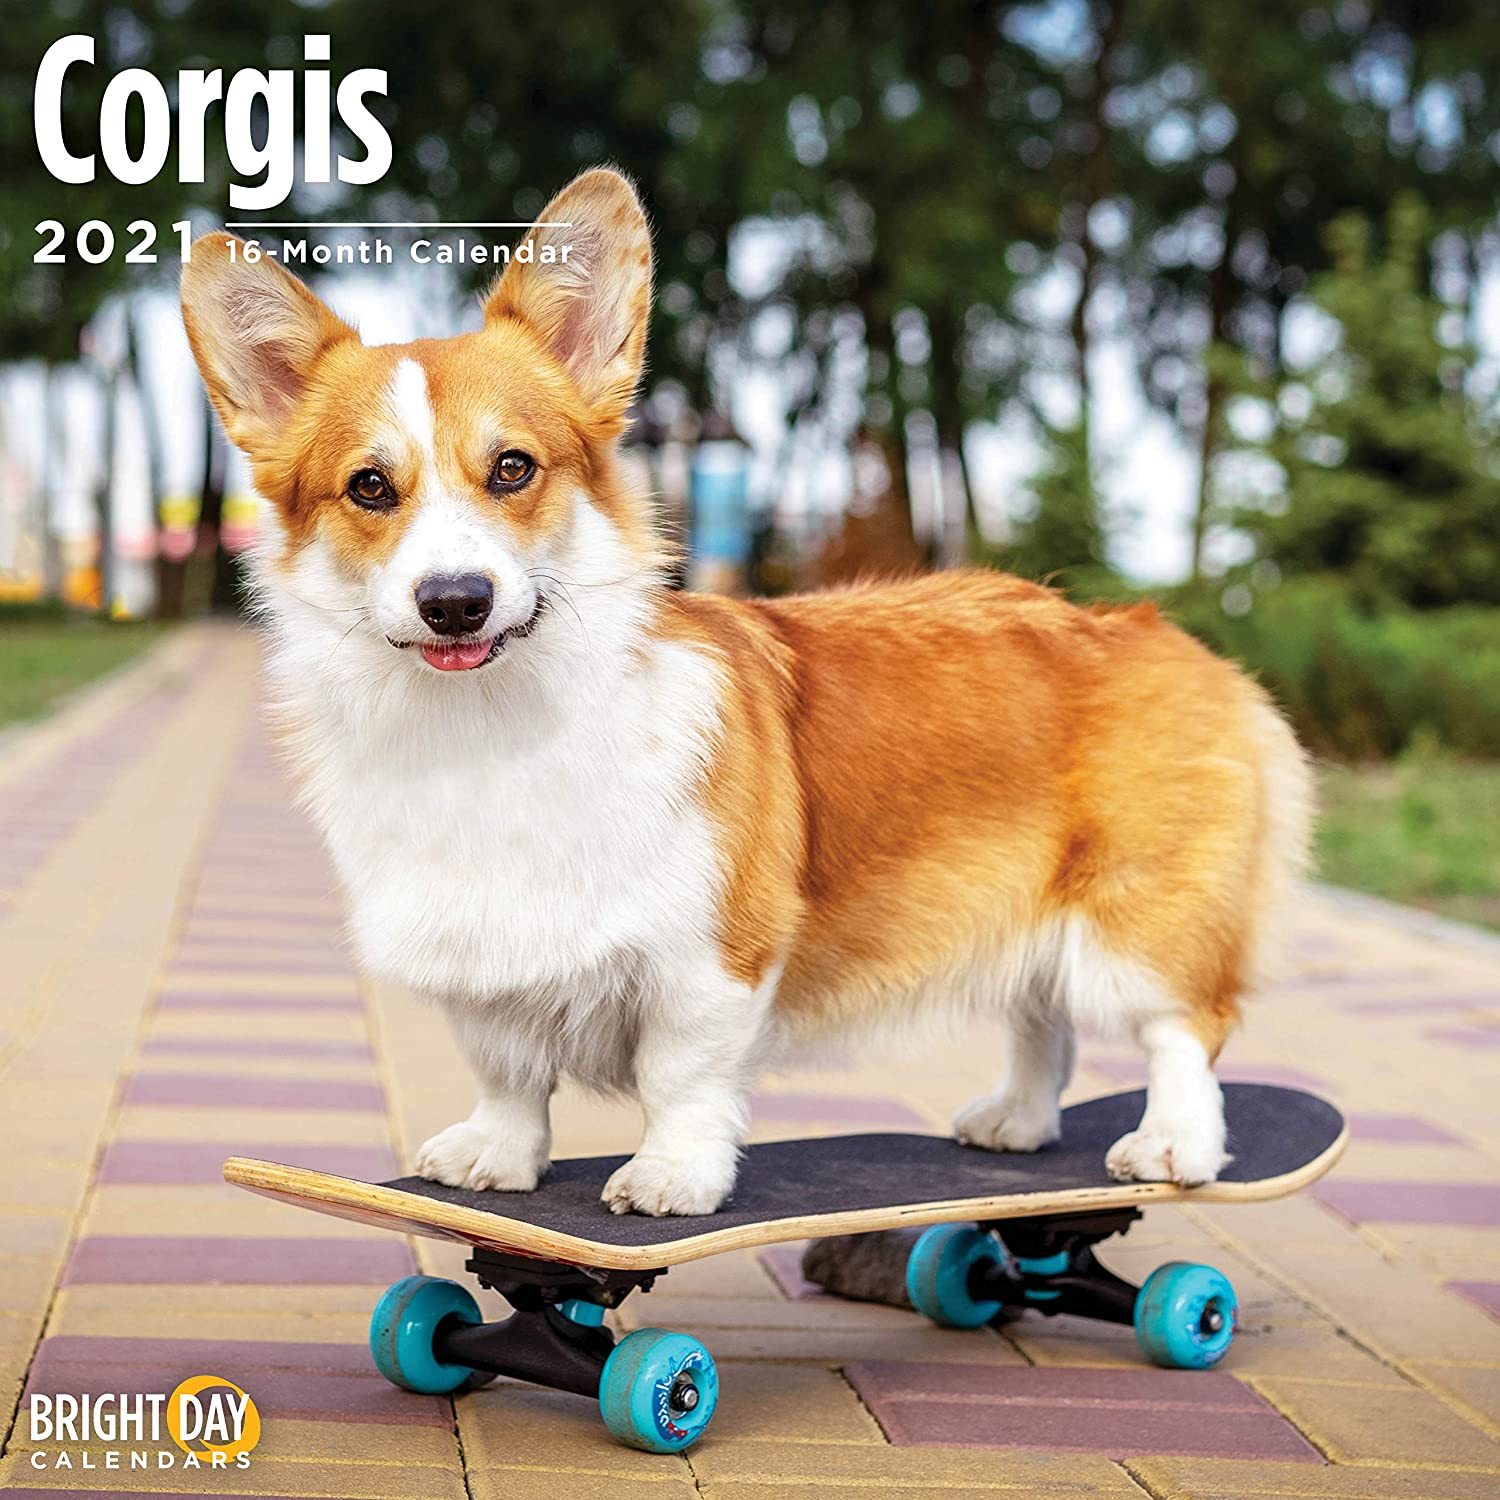 2021 Corgis Wall Calendar by Bright Day, 12 x 12 Inch, Cute Dog Puppy